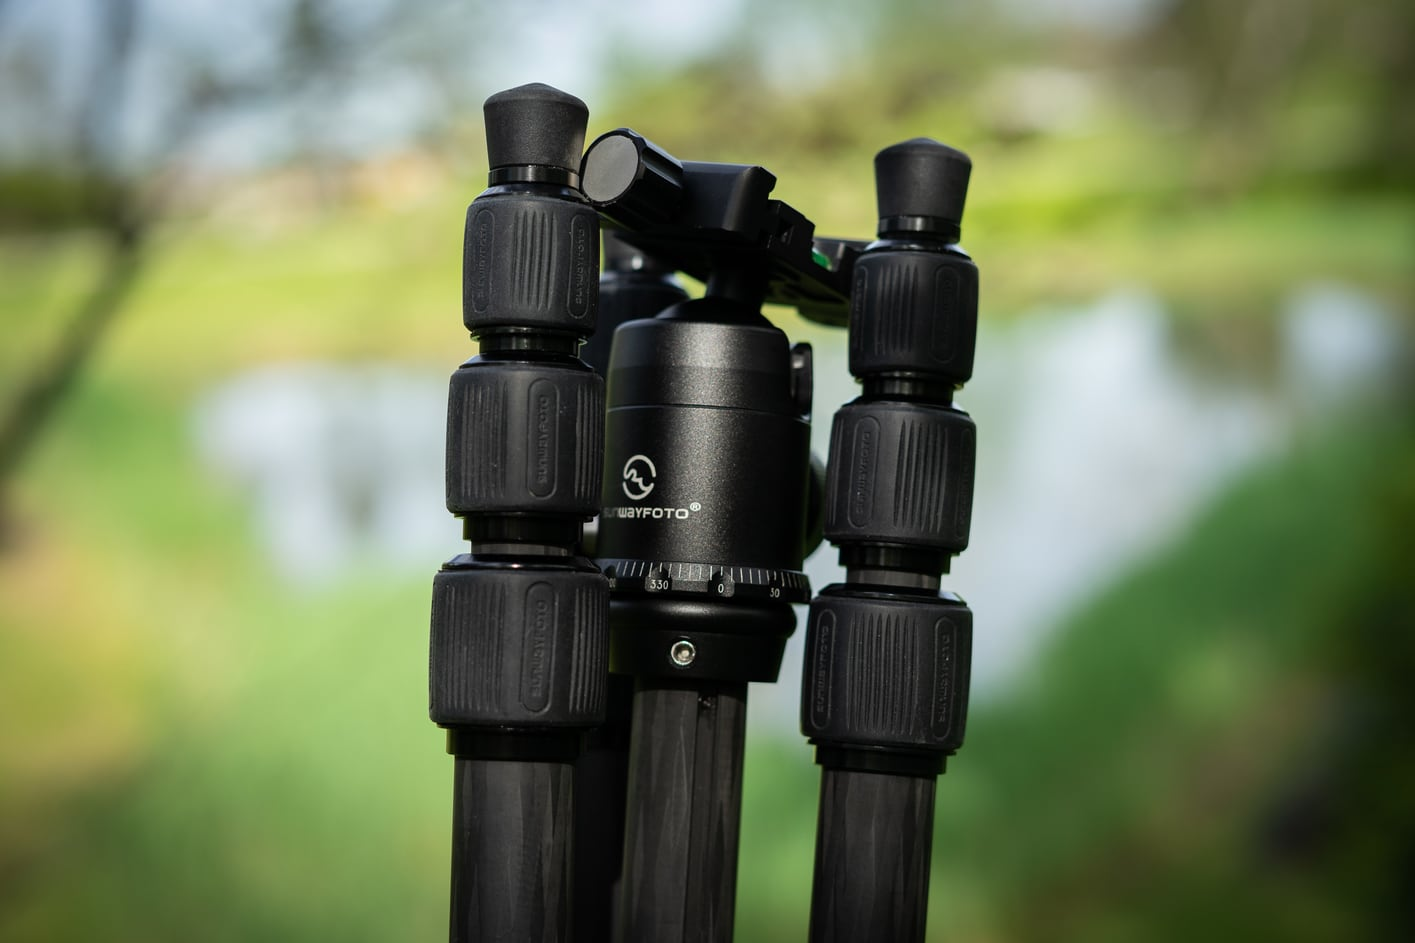 Sunwayfoto T1C40T Tripod opinion - The tripod can be folded 180 degrees